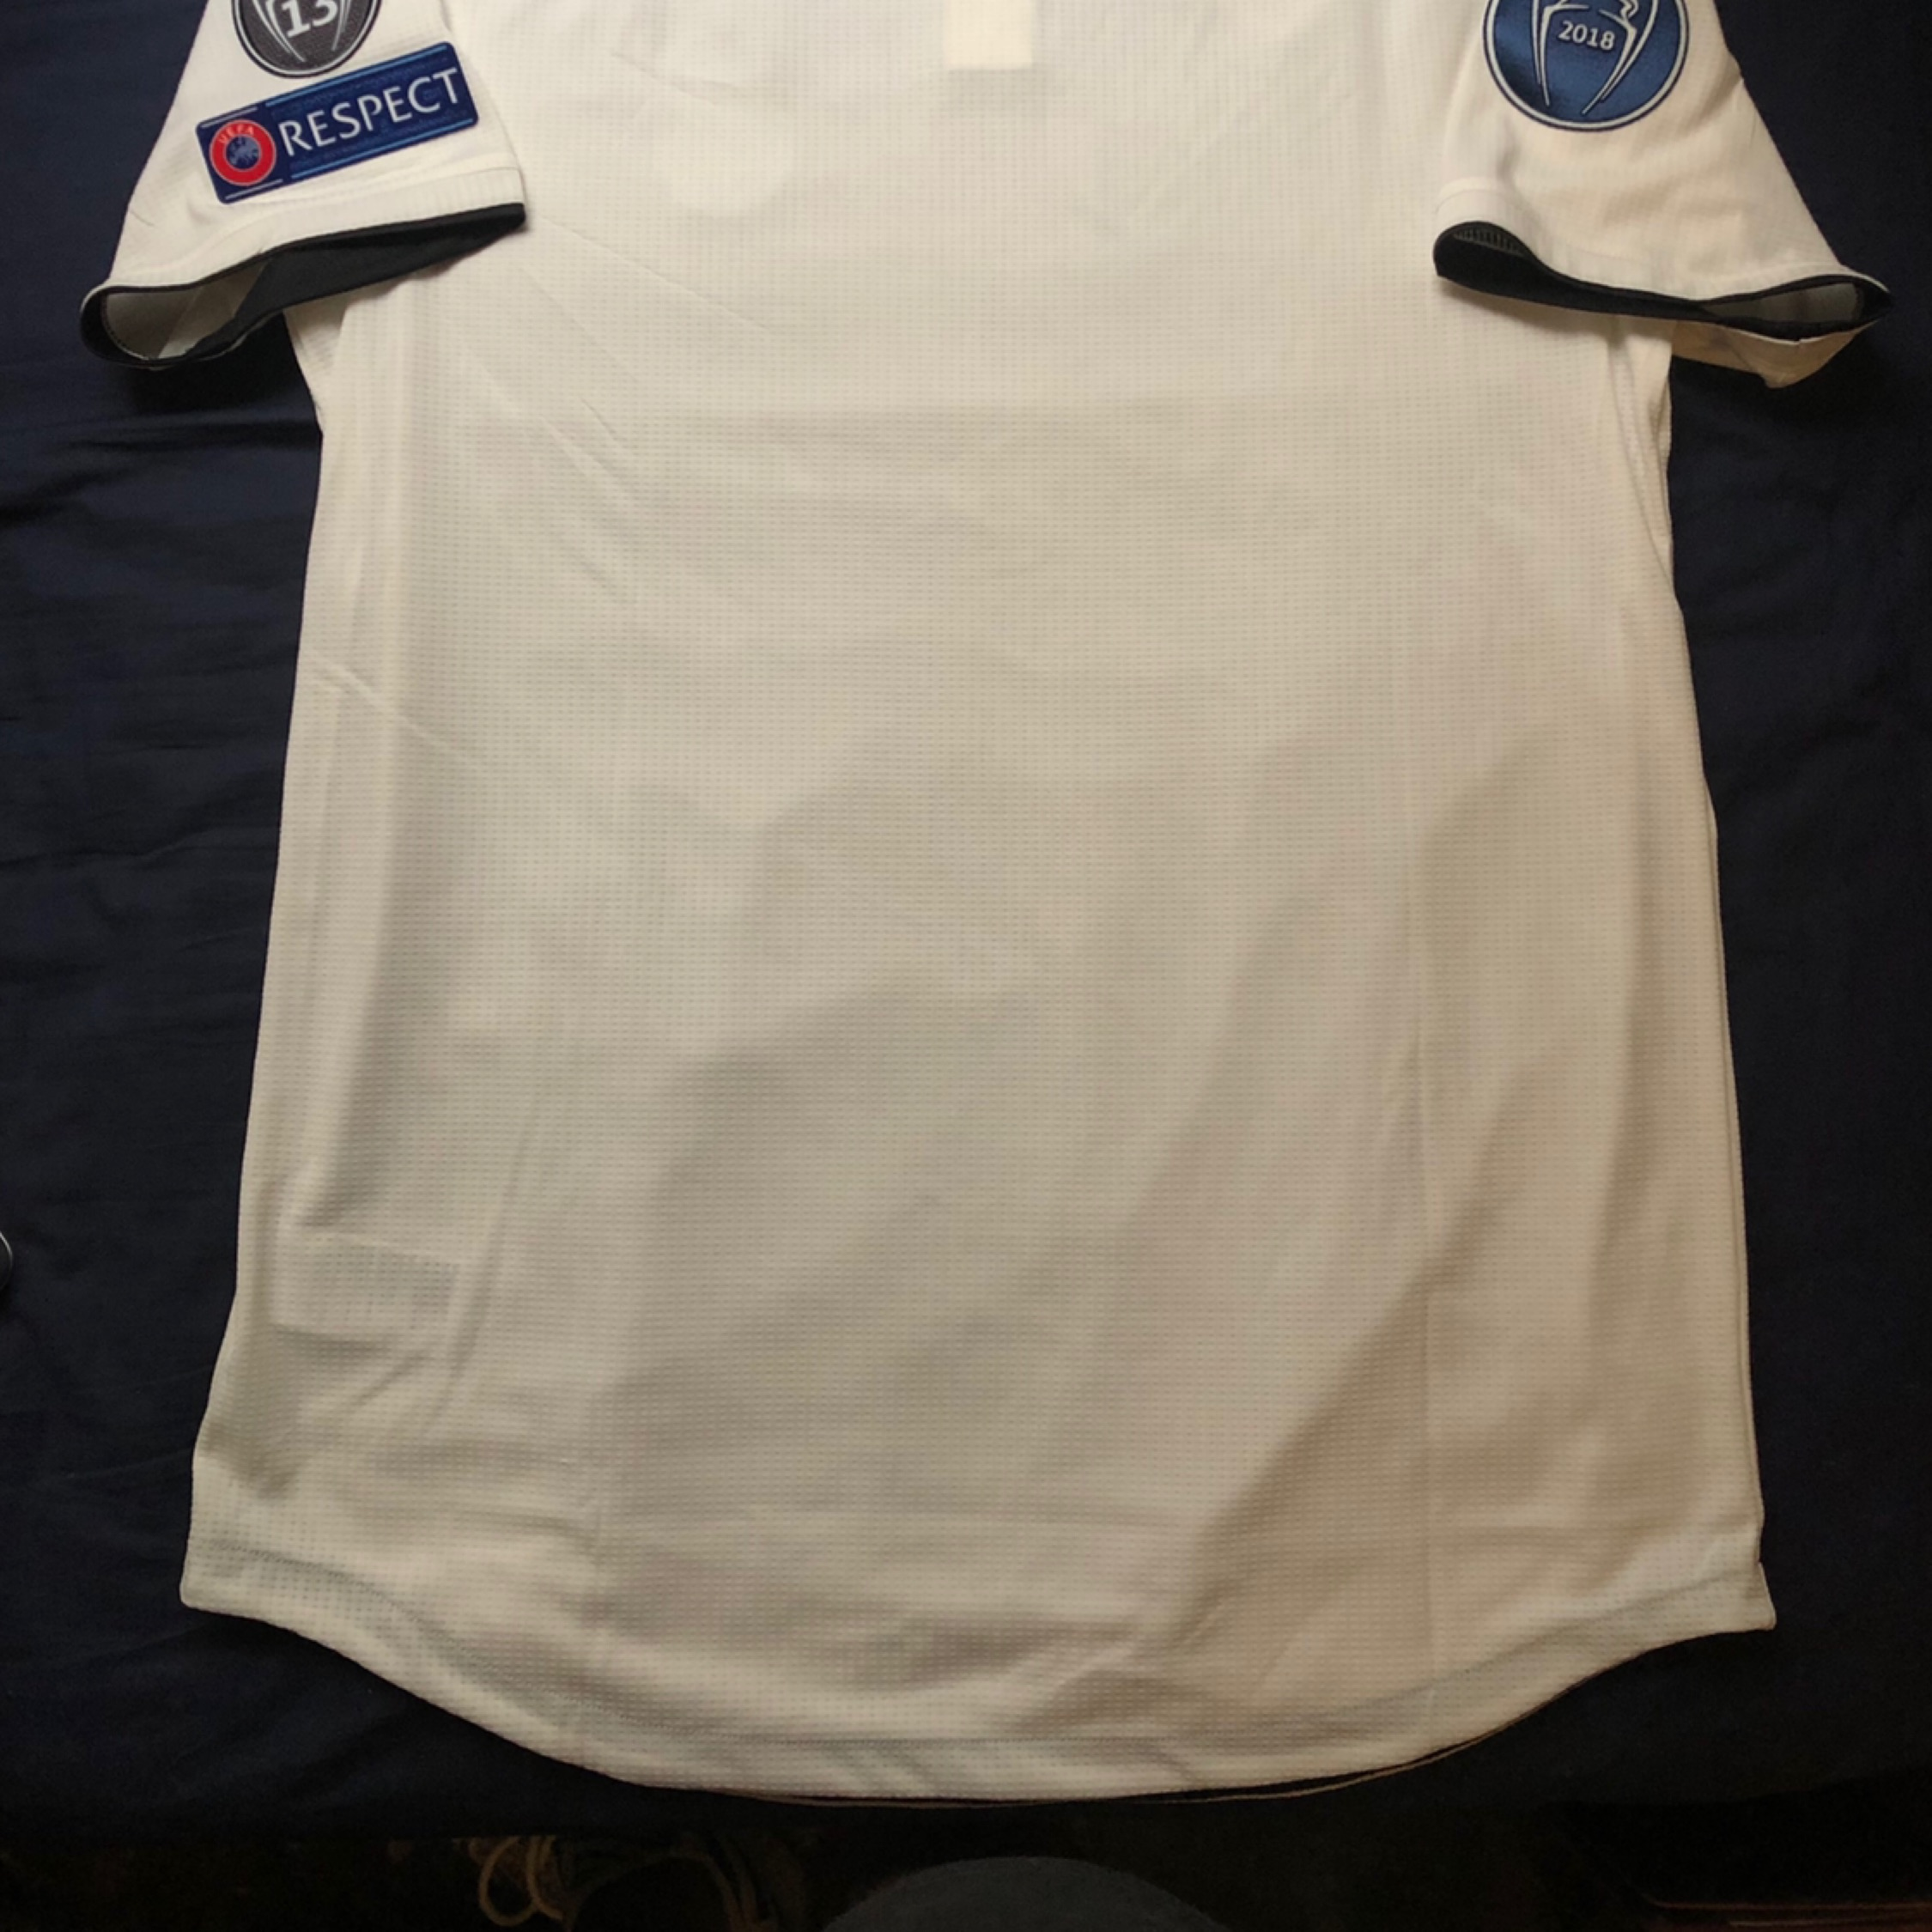 reputable site e48c9 1aab6 Real Madrid Jersey(Authentic) 2018-2019